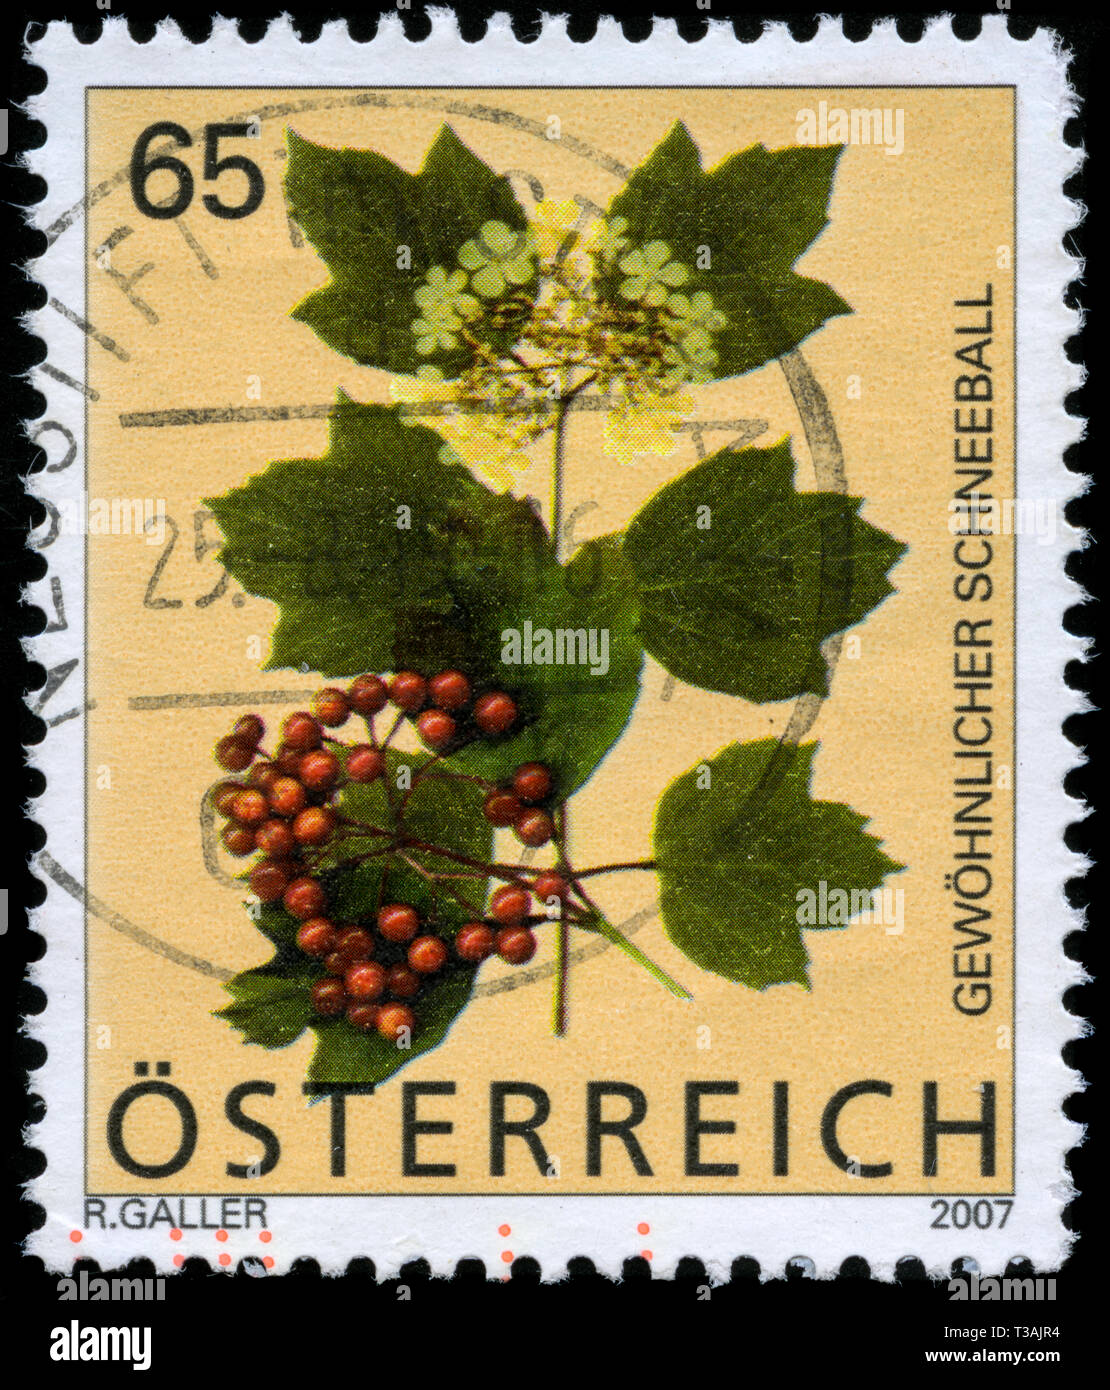 Postage stamp from Austria in the Alpine Flowers series issued in 2007 - Stock Image